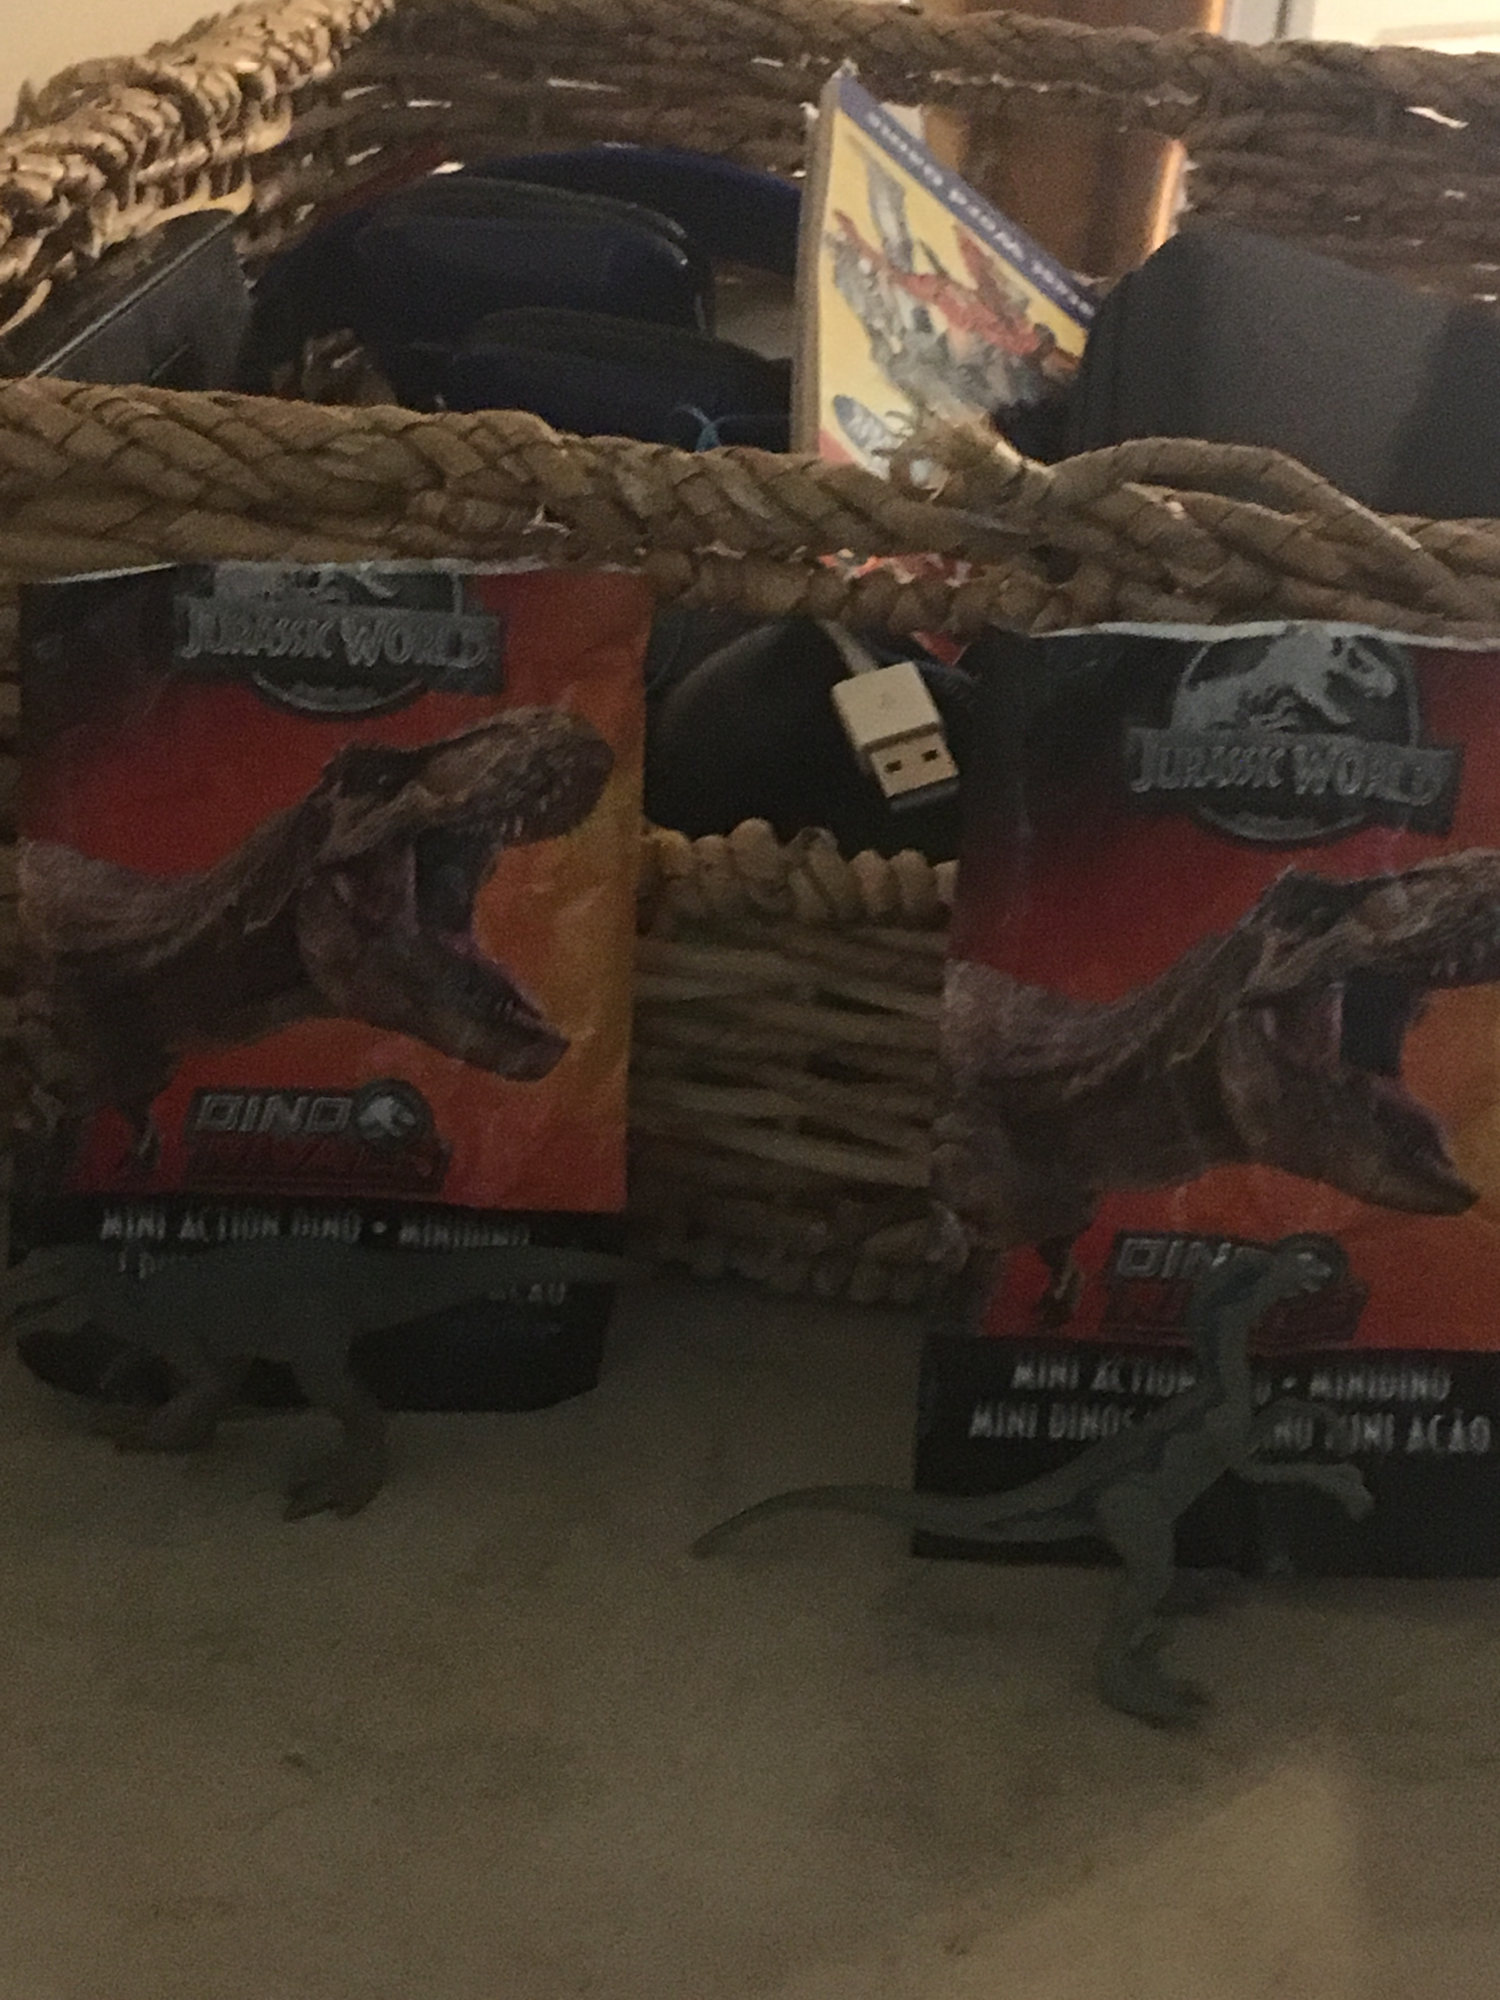 New figures out of mystery bags